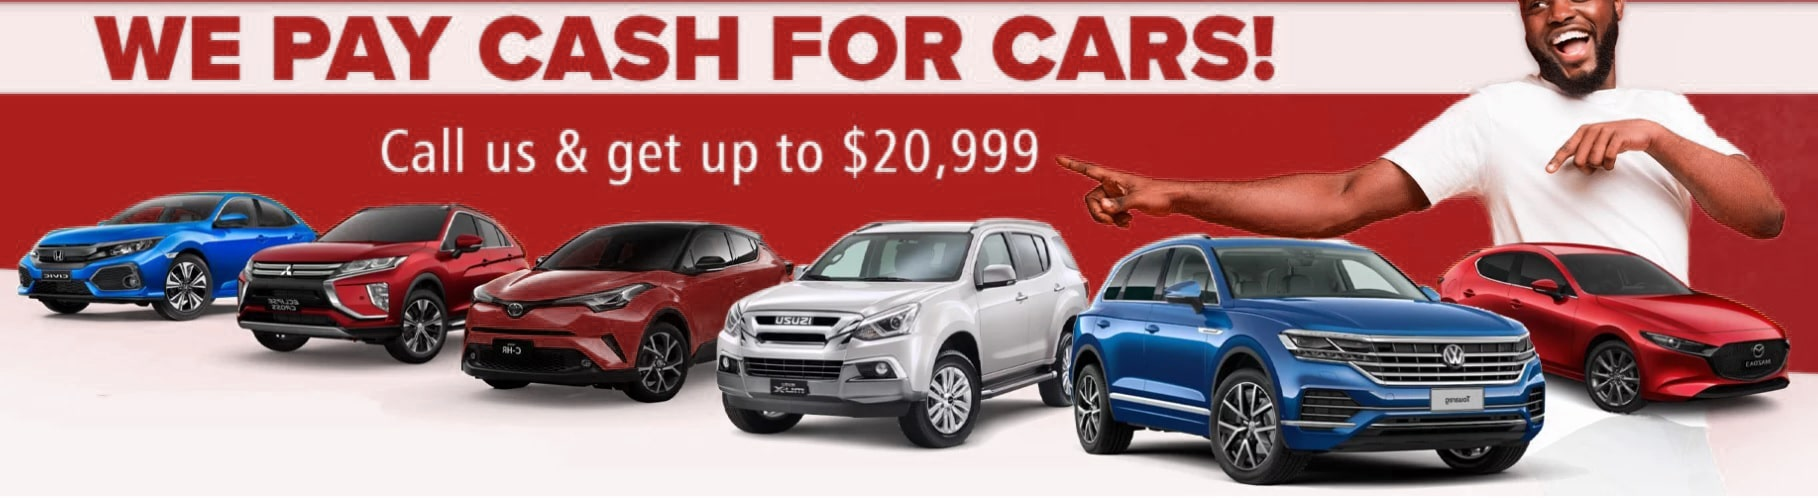 Cash for Cars Tuerong